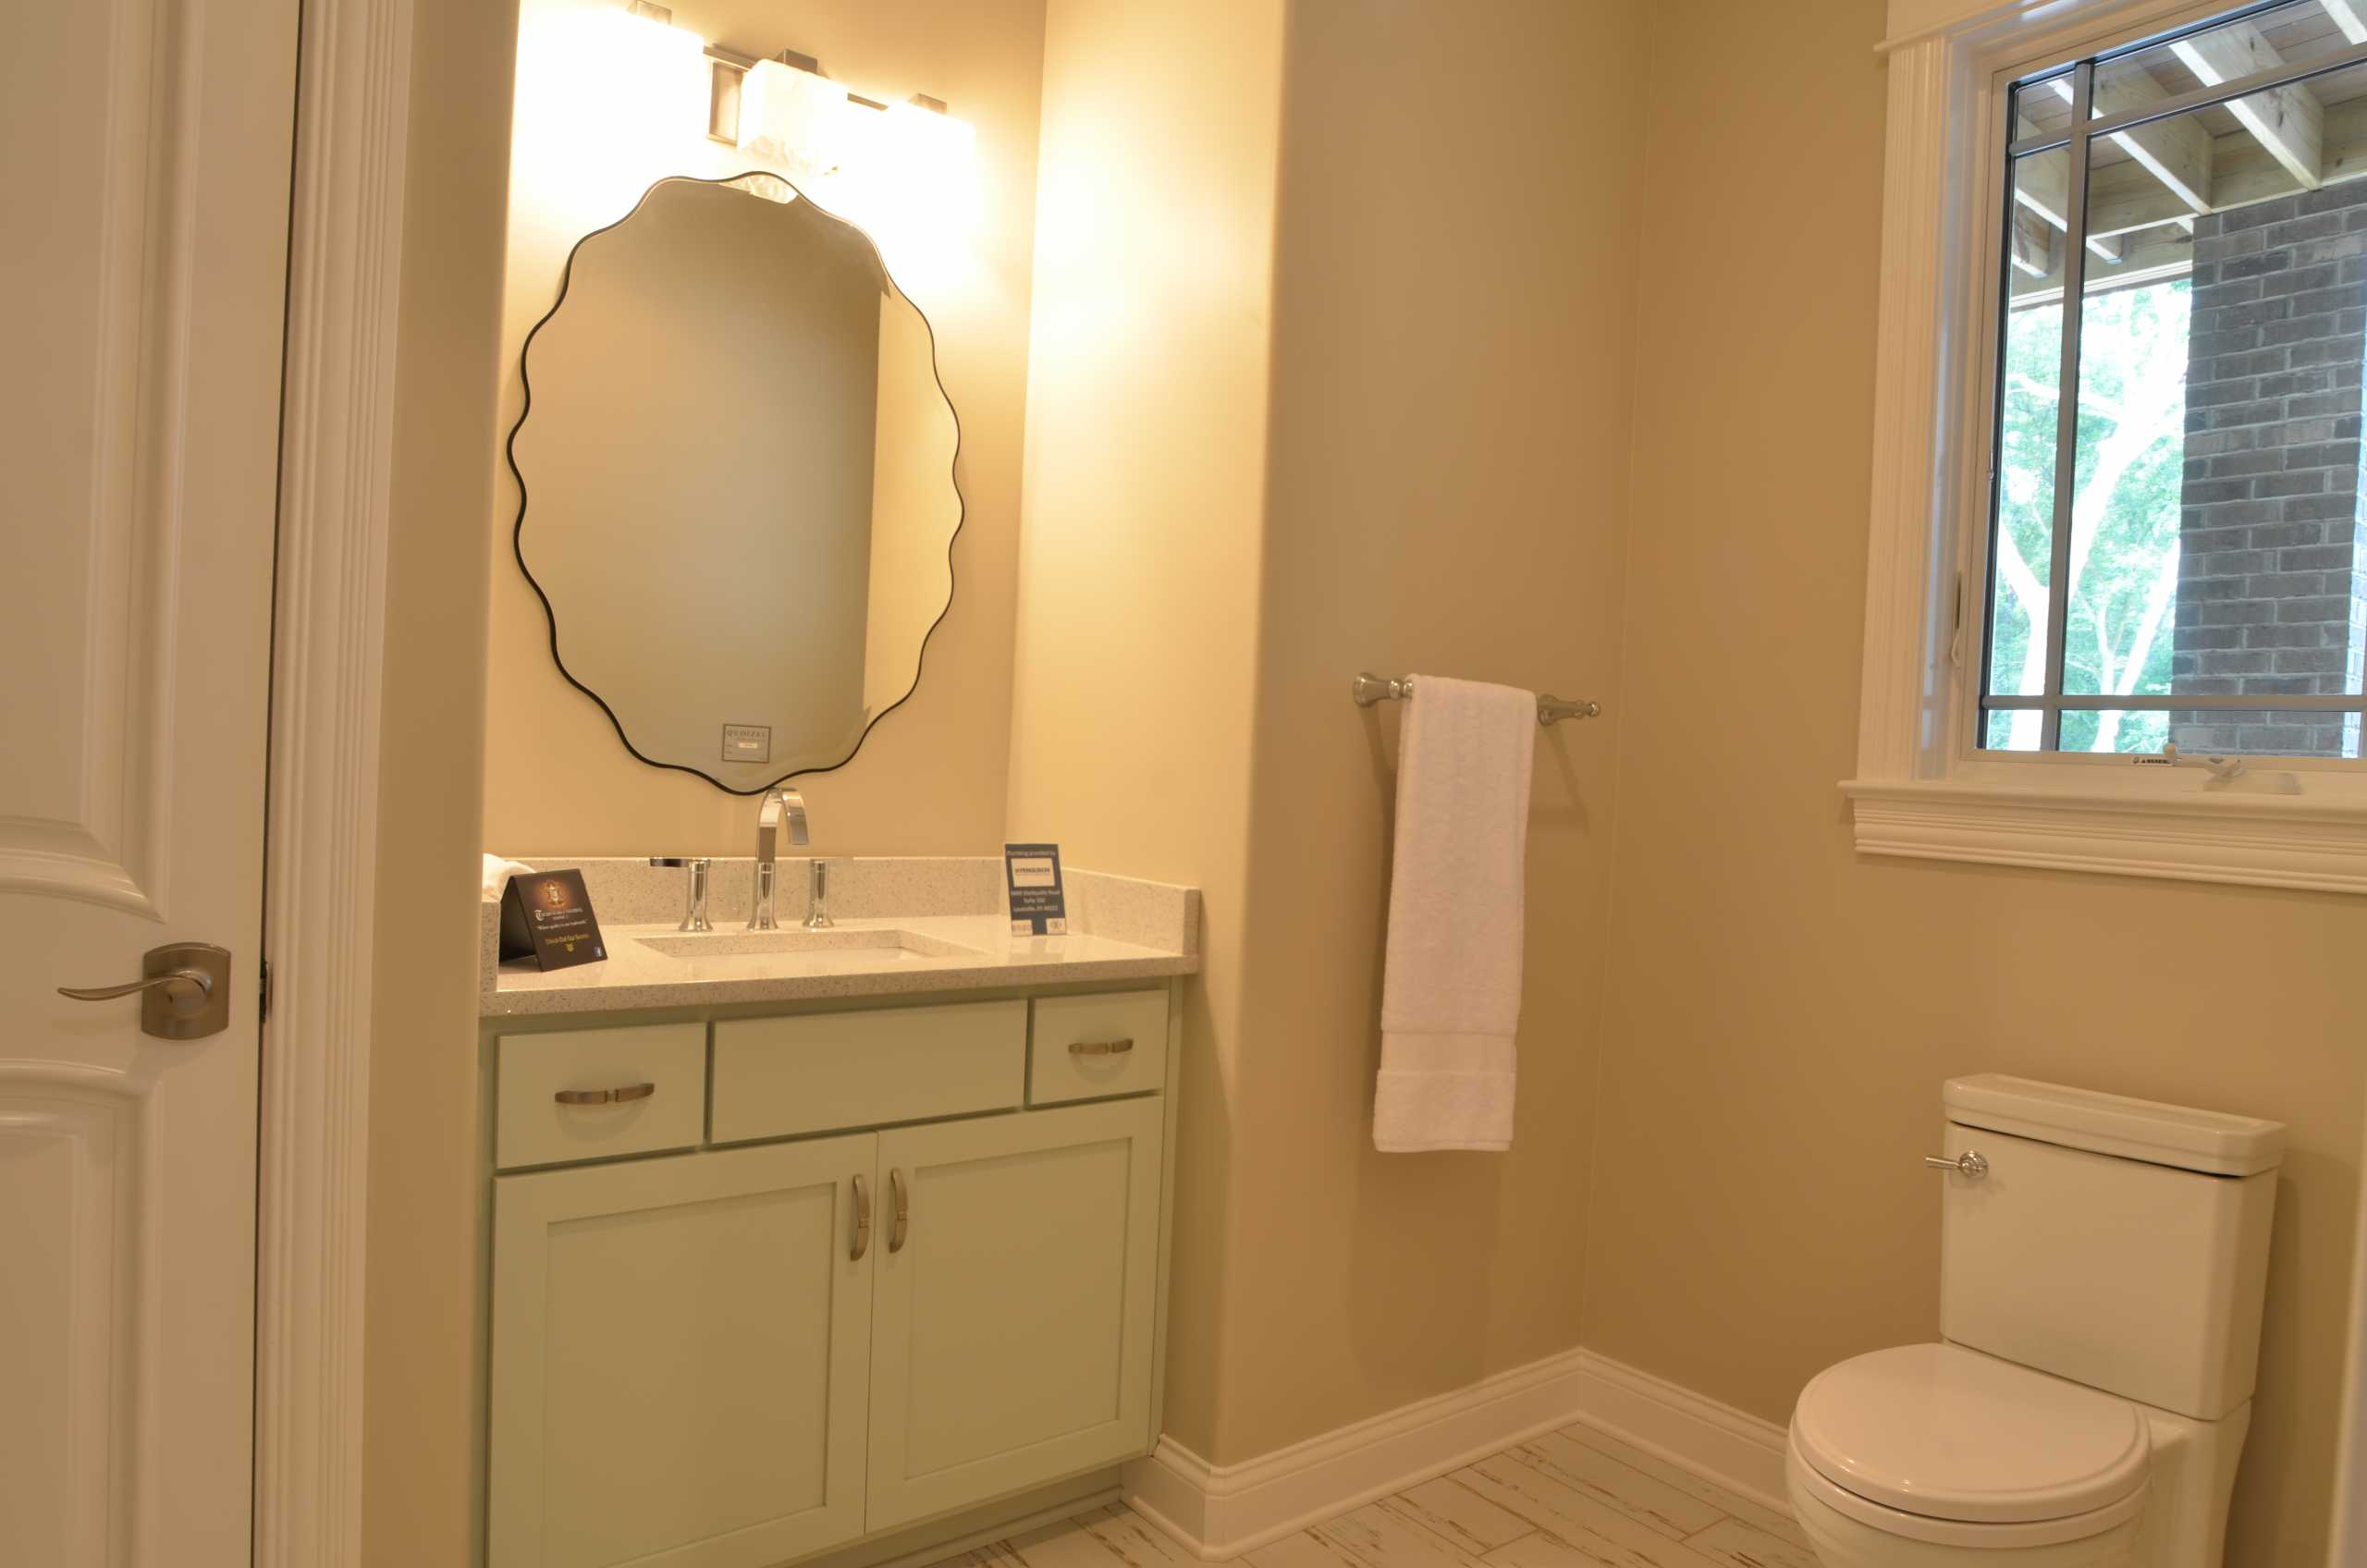 Louisville Bathroom Cabinet remodel